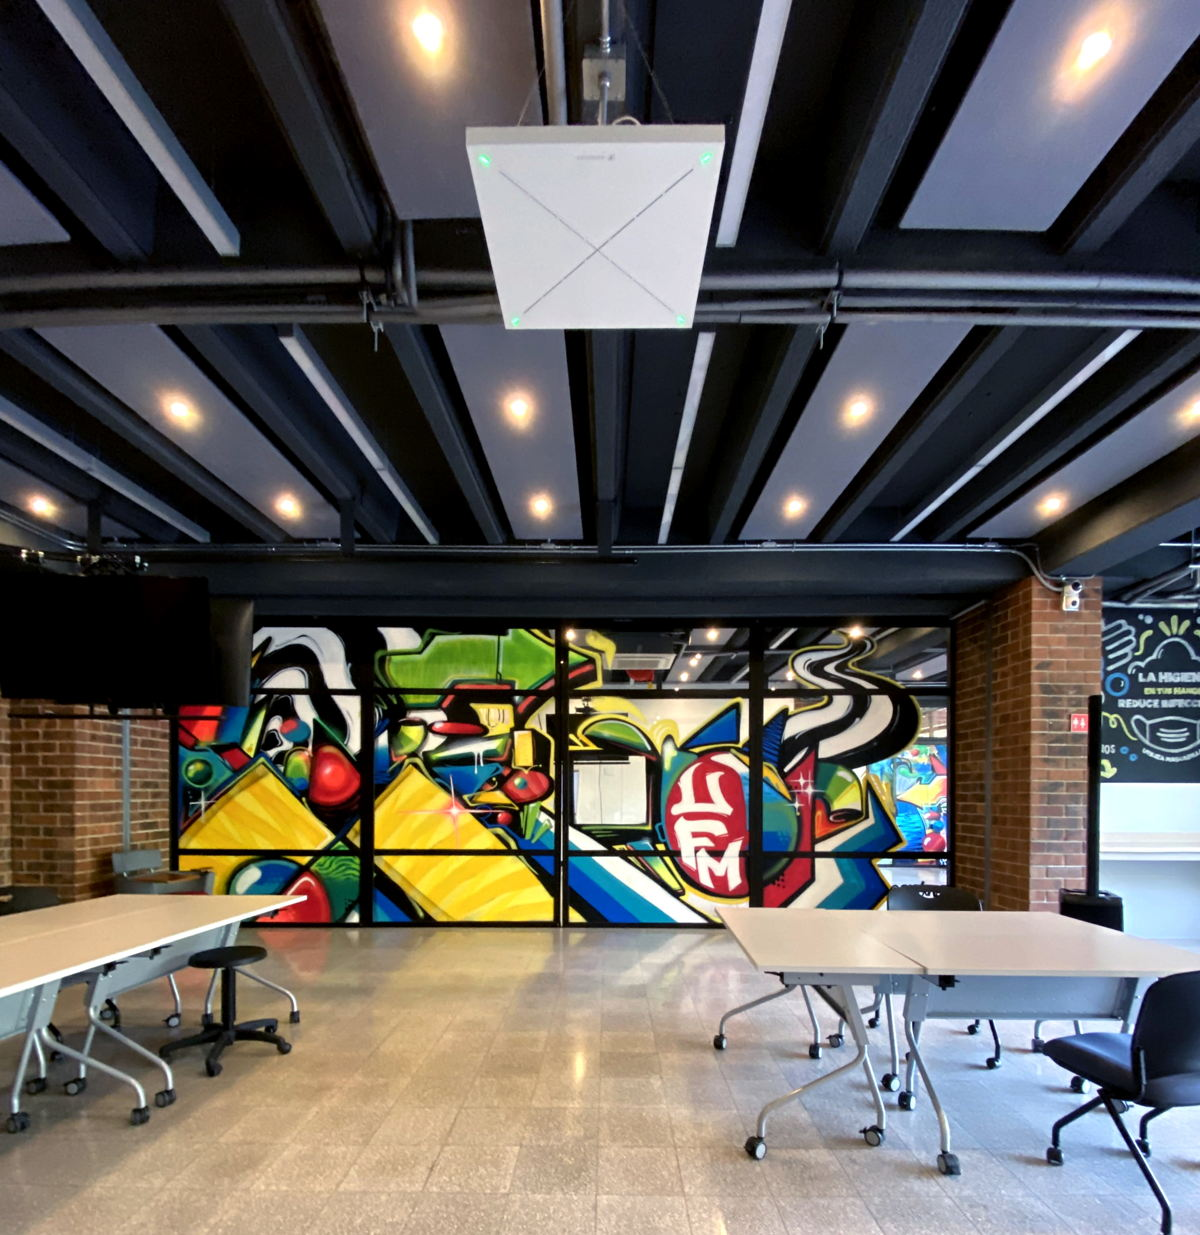 Universidad Francisco Marroquín is one of the top universities in Latin America. To future-proof its campus, UFM worked with installer FAREI to deploy Sennheiser TeamConnect Ceiling 2 microphones in 52 of its classrooms and various faculty auditoriums